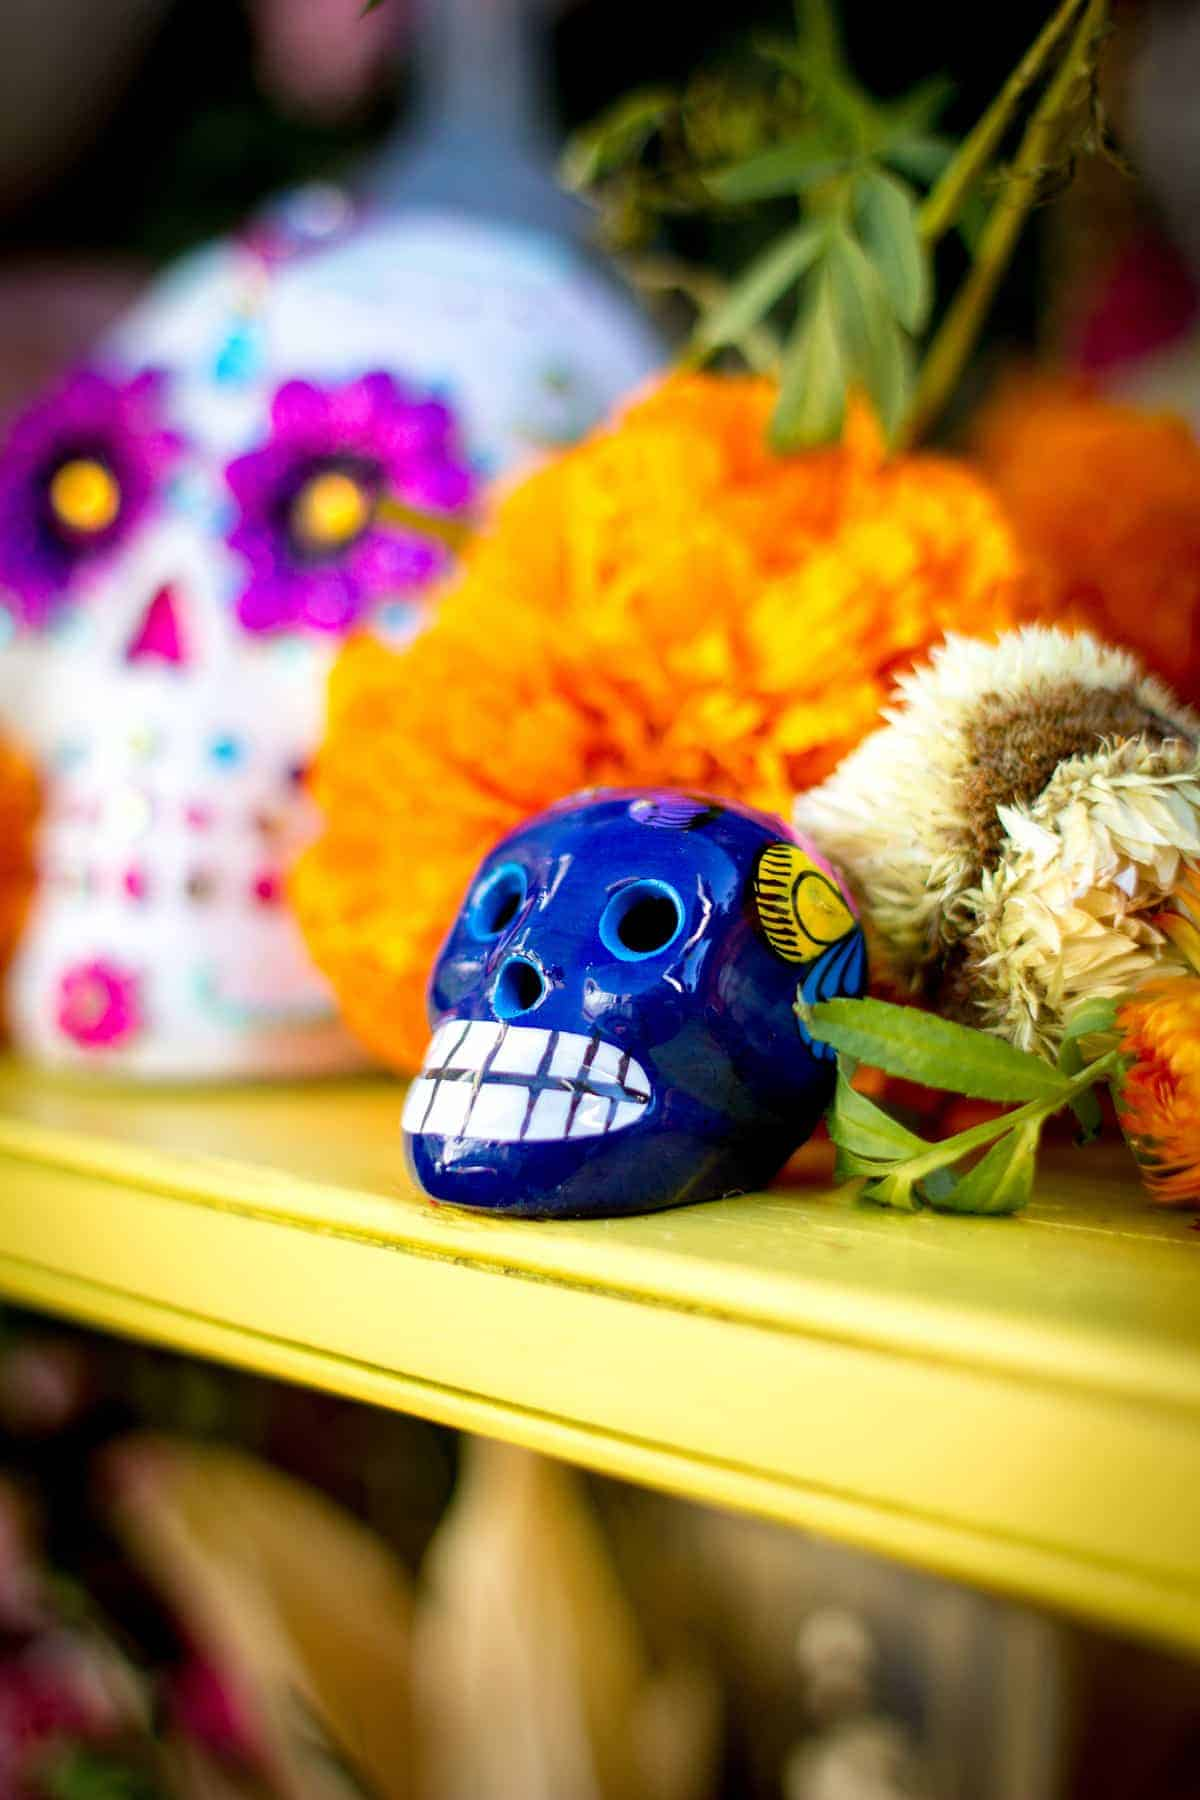 A blue ceramic calavera sitting next to orange marigolds on a Day of the Dead Altar next to a white larger calavera in the background.